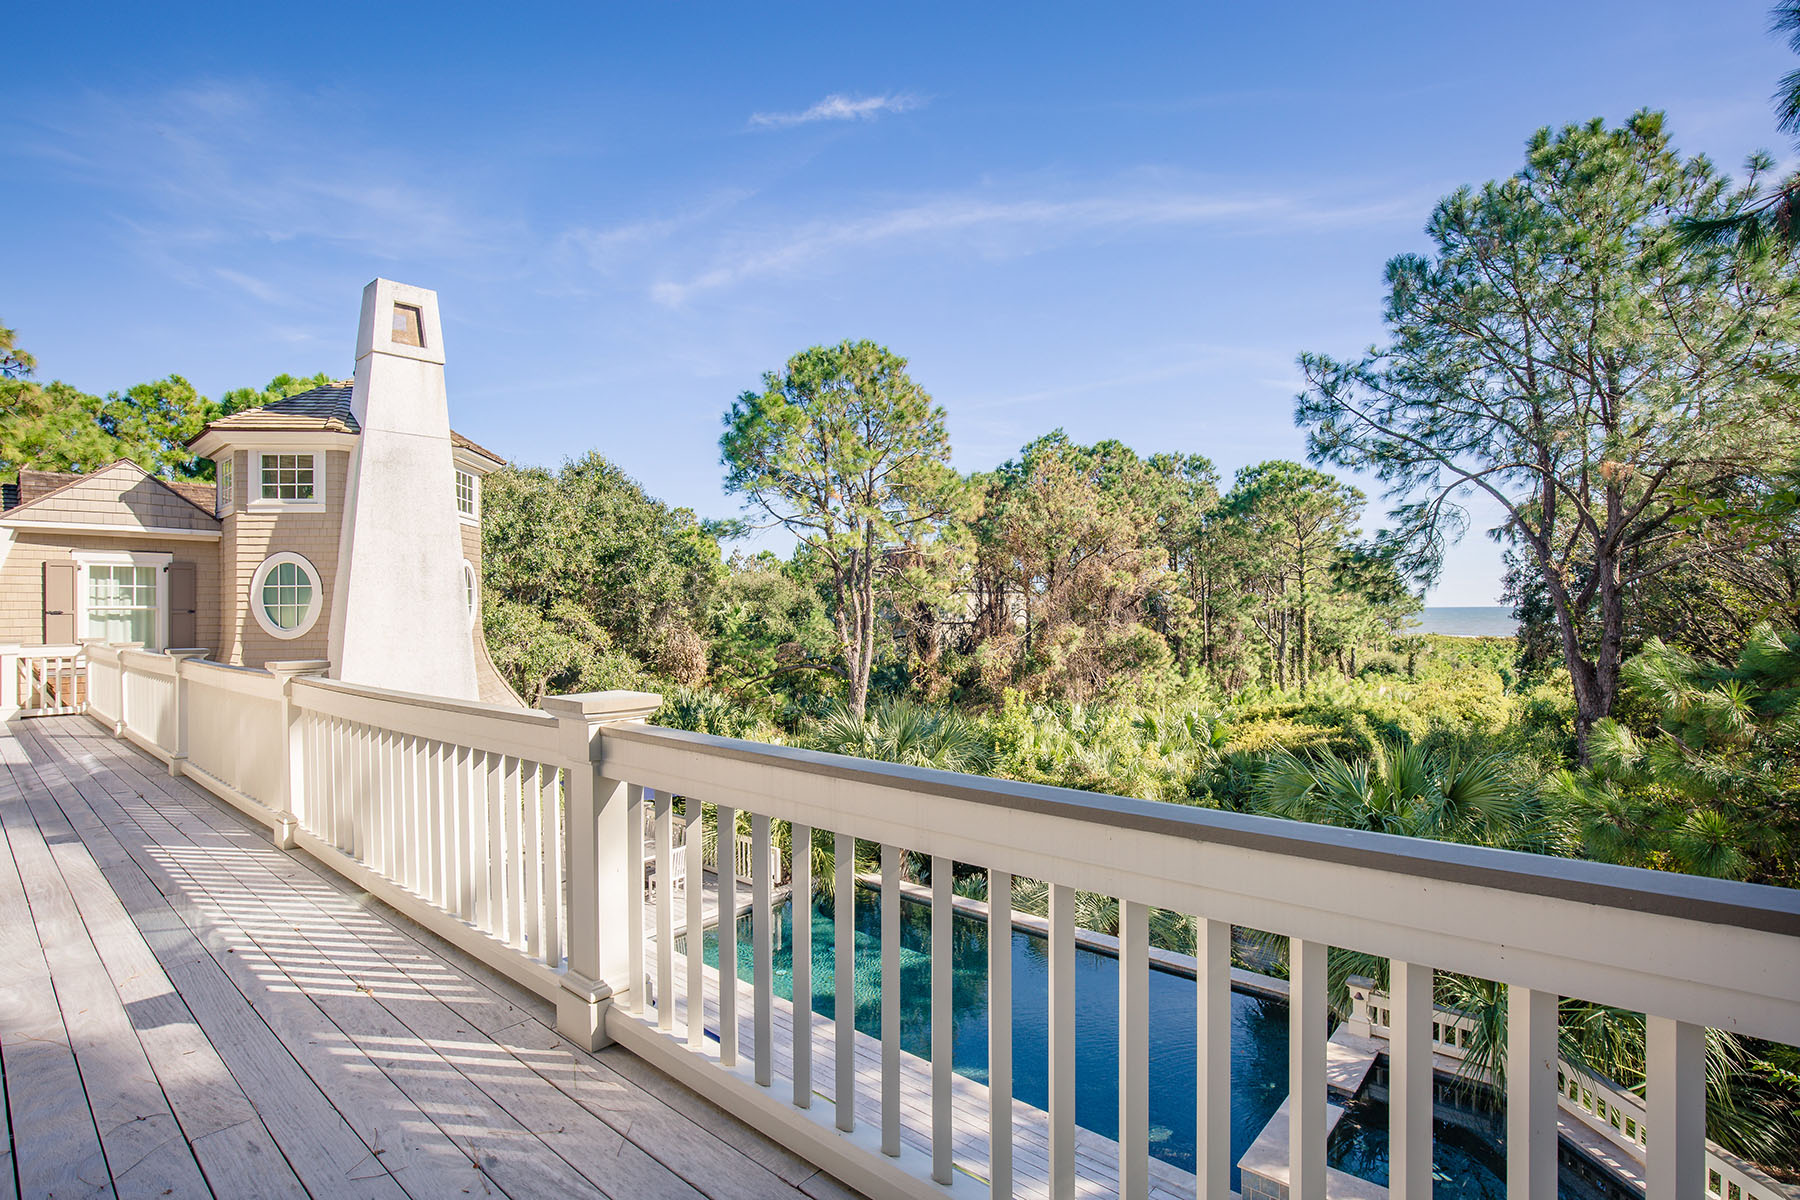 Additional photo for property listing at 109 Flyway Drive 109 Flyway Drive Kiawah Island, South Carolina 29455 United States